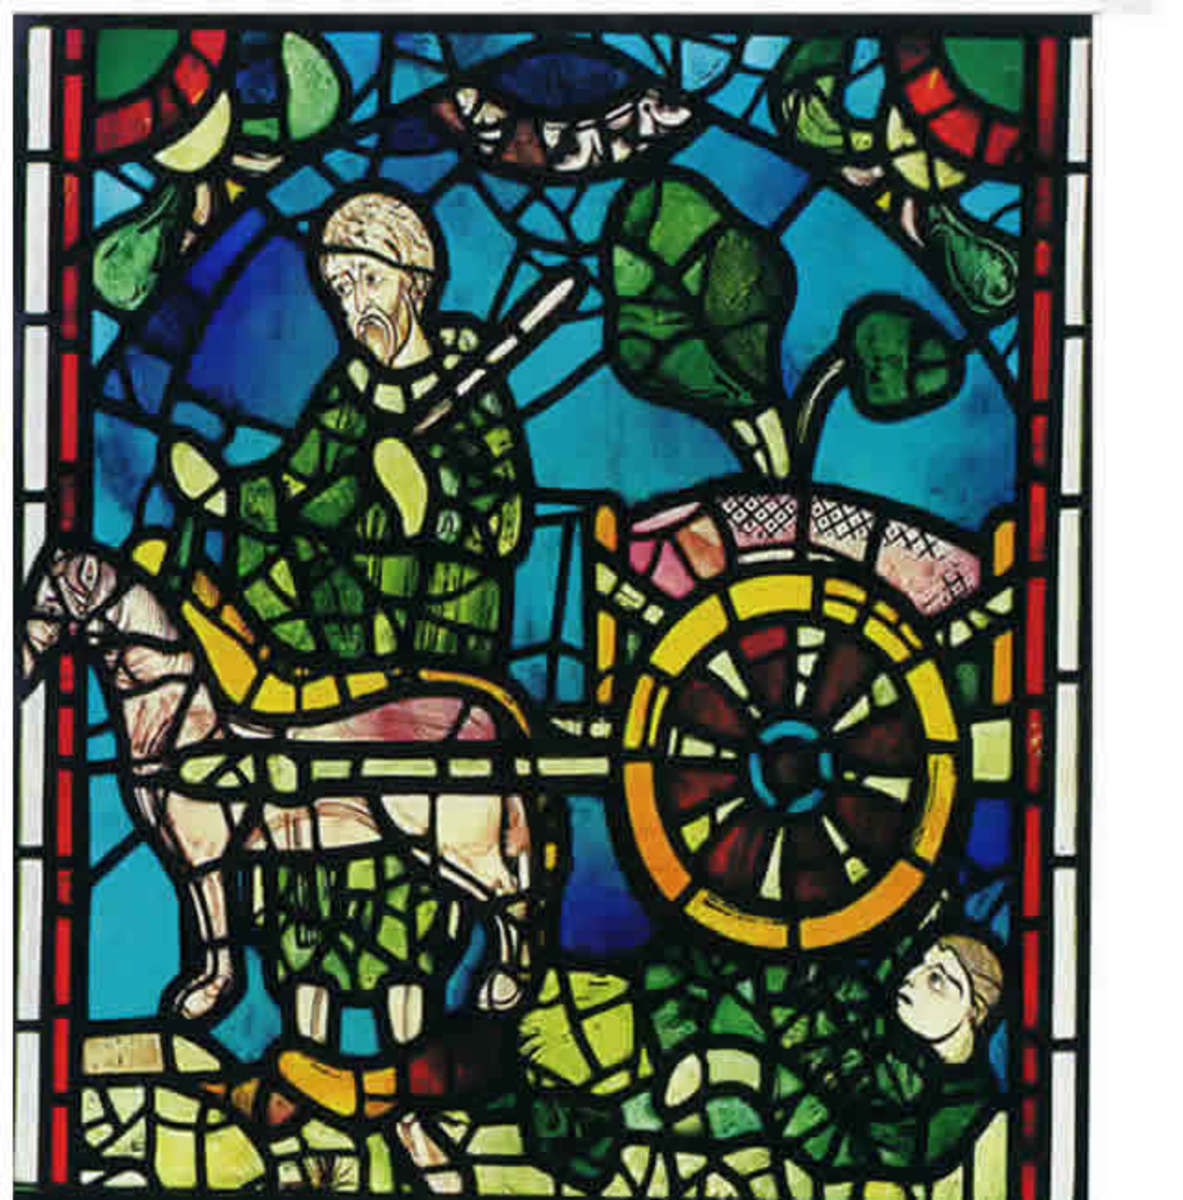 An example of some of the first stained glass created.